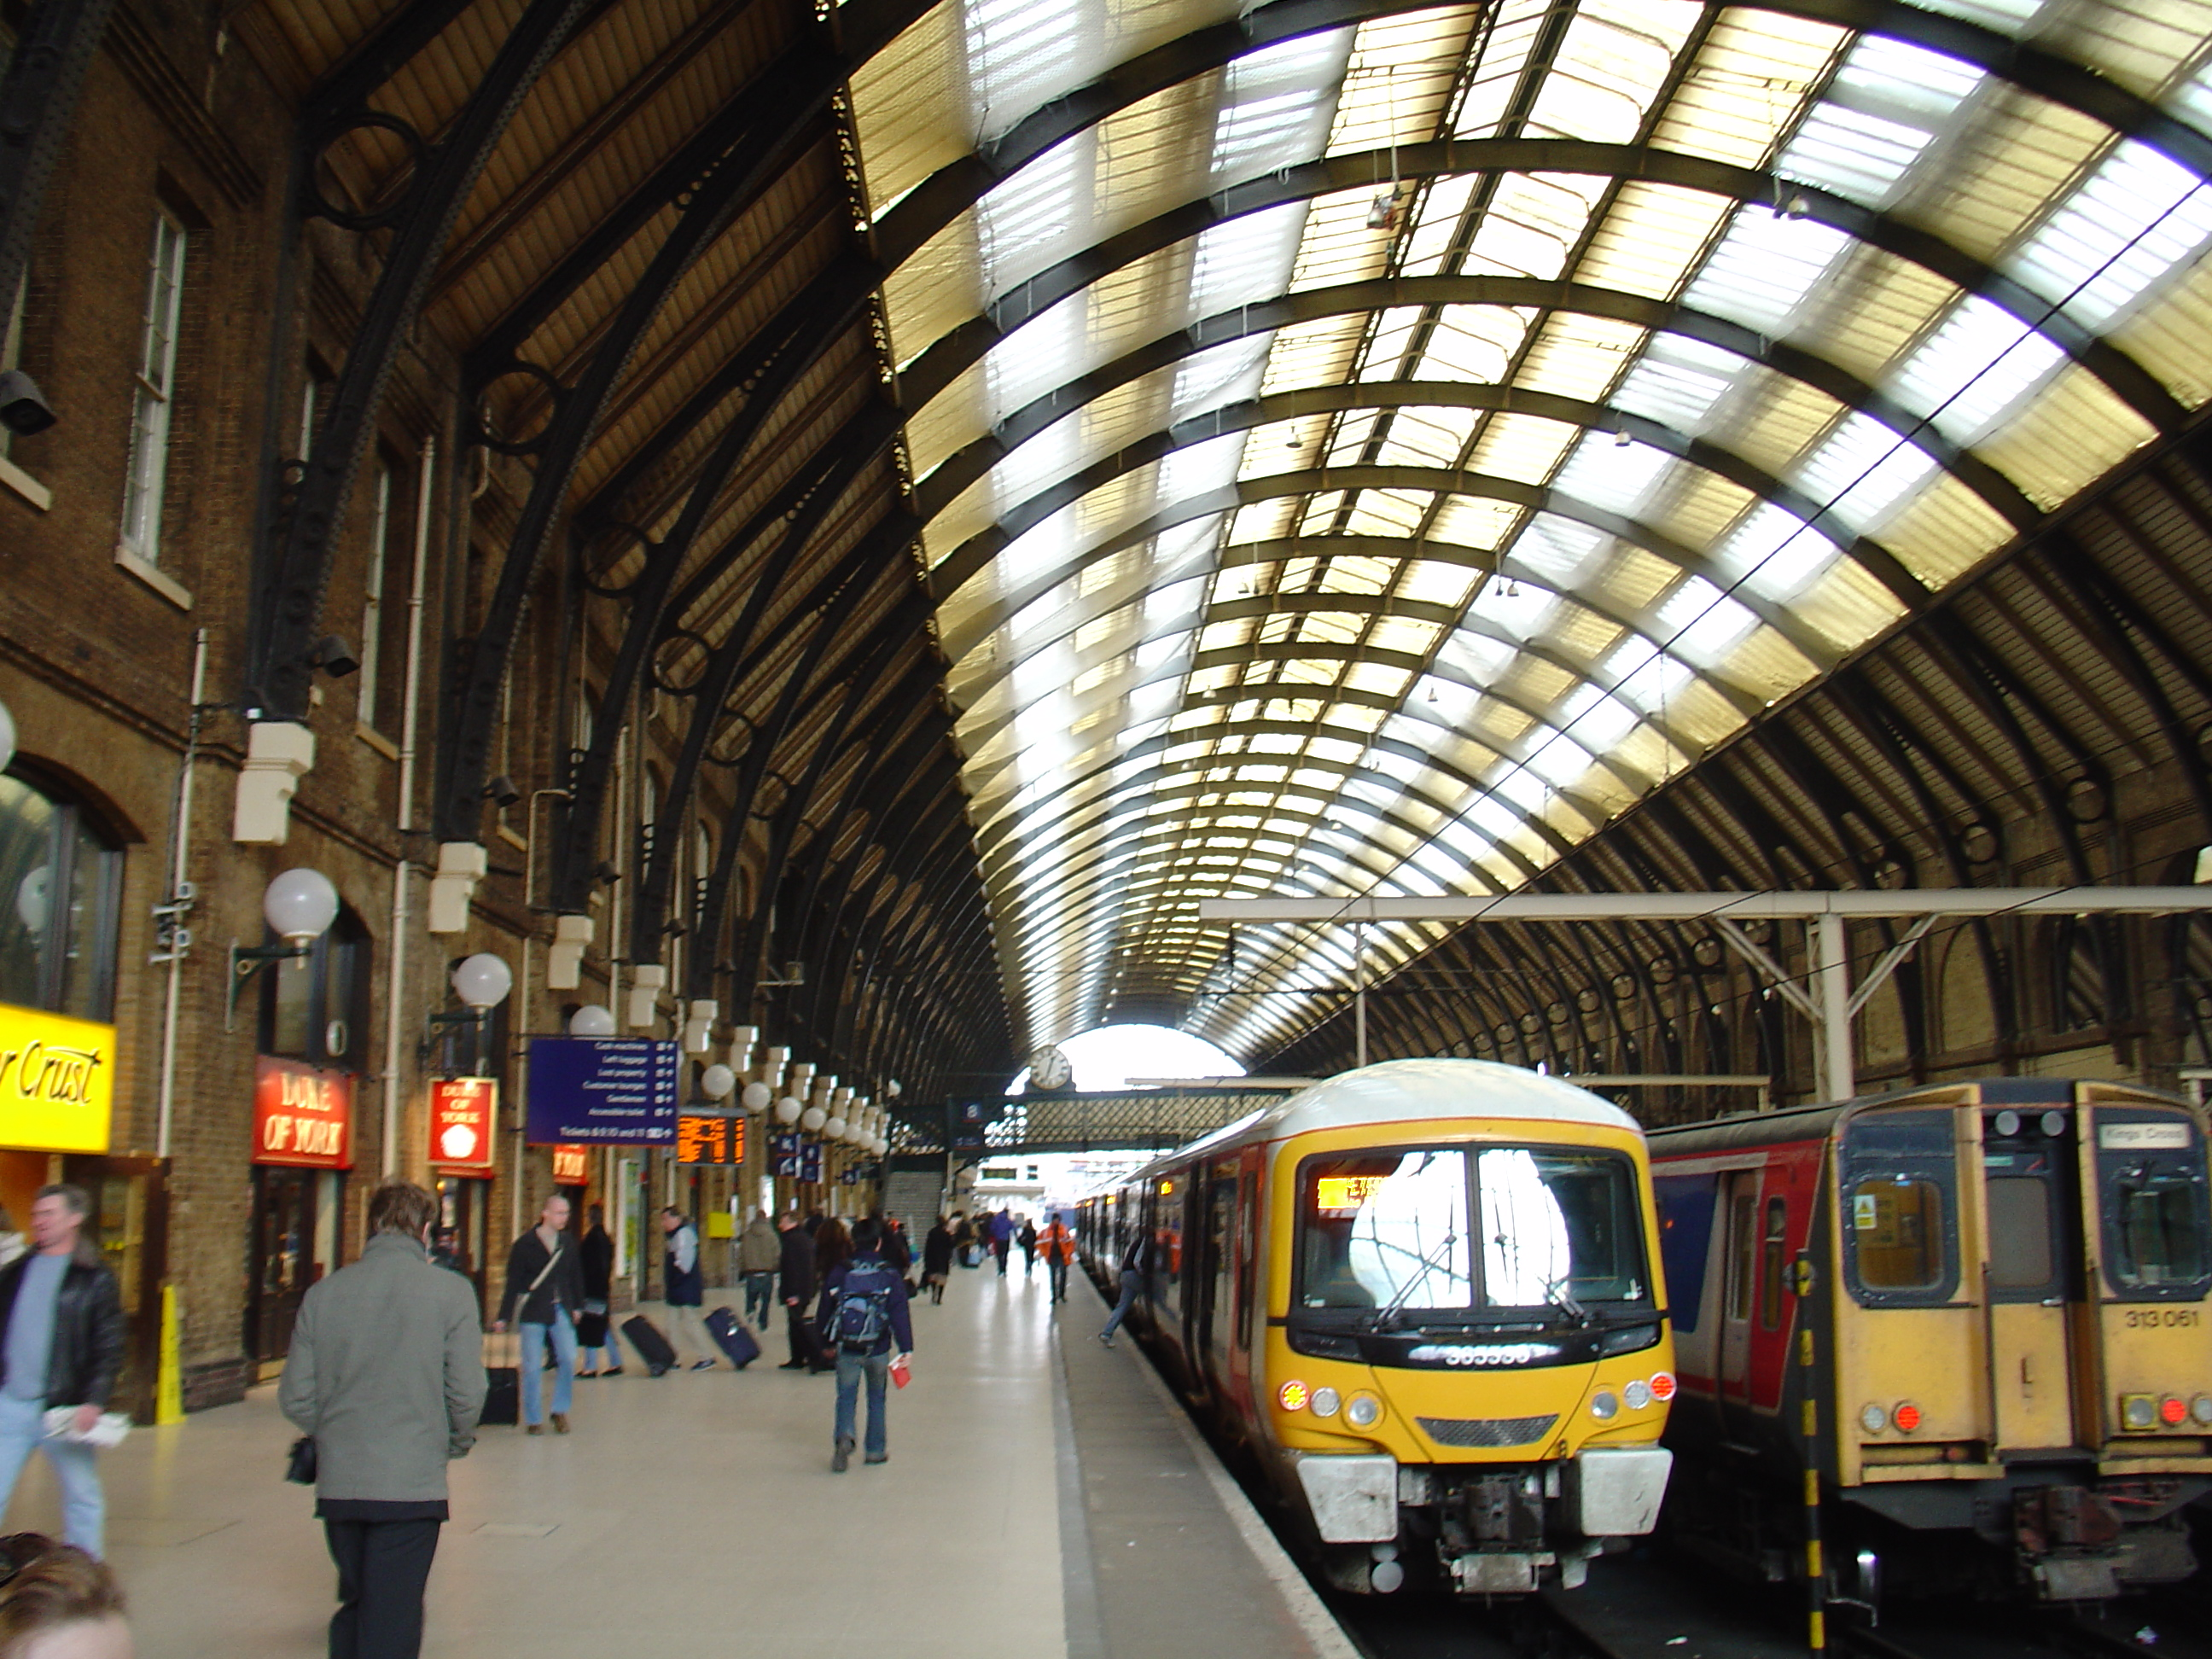 Great London Buildings – King's Cross Railway Station